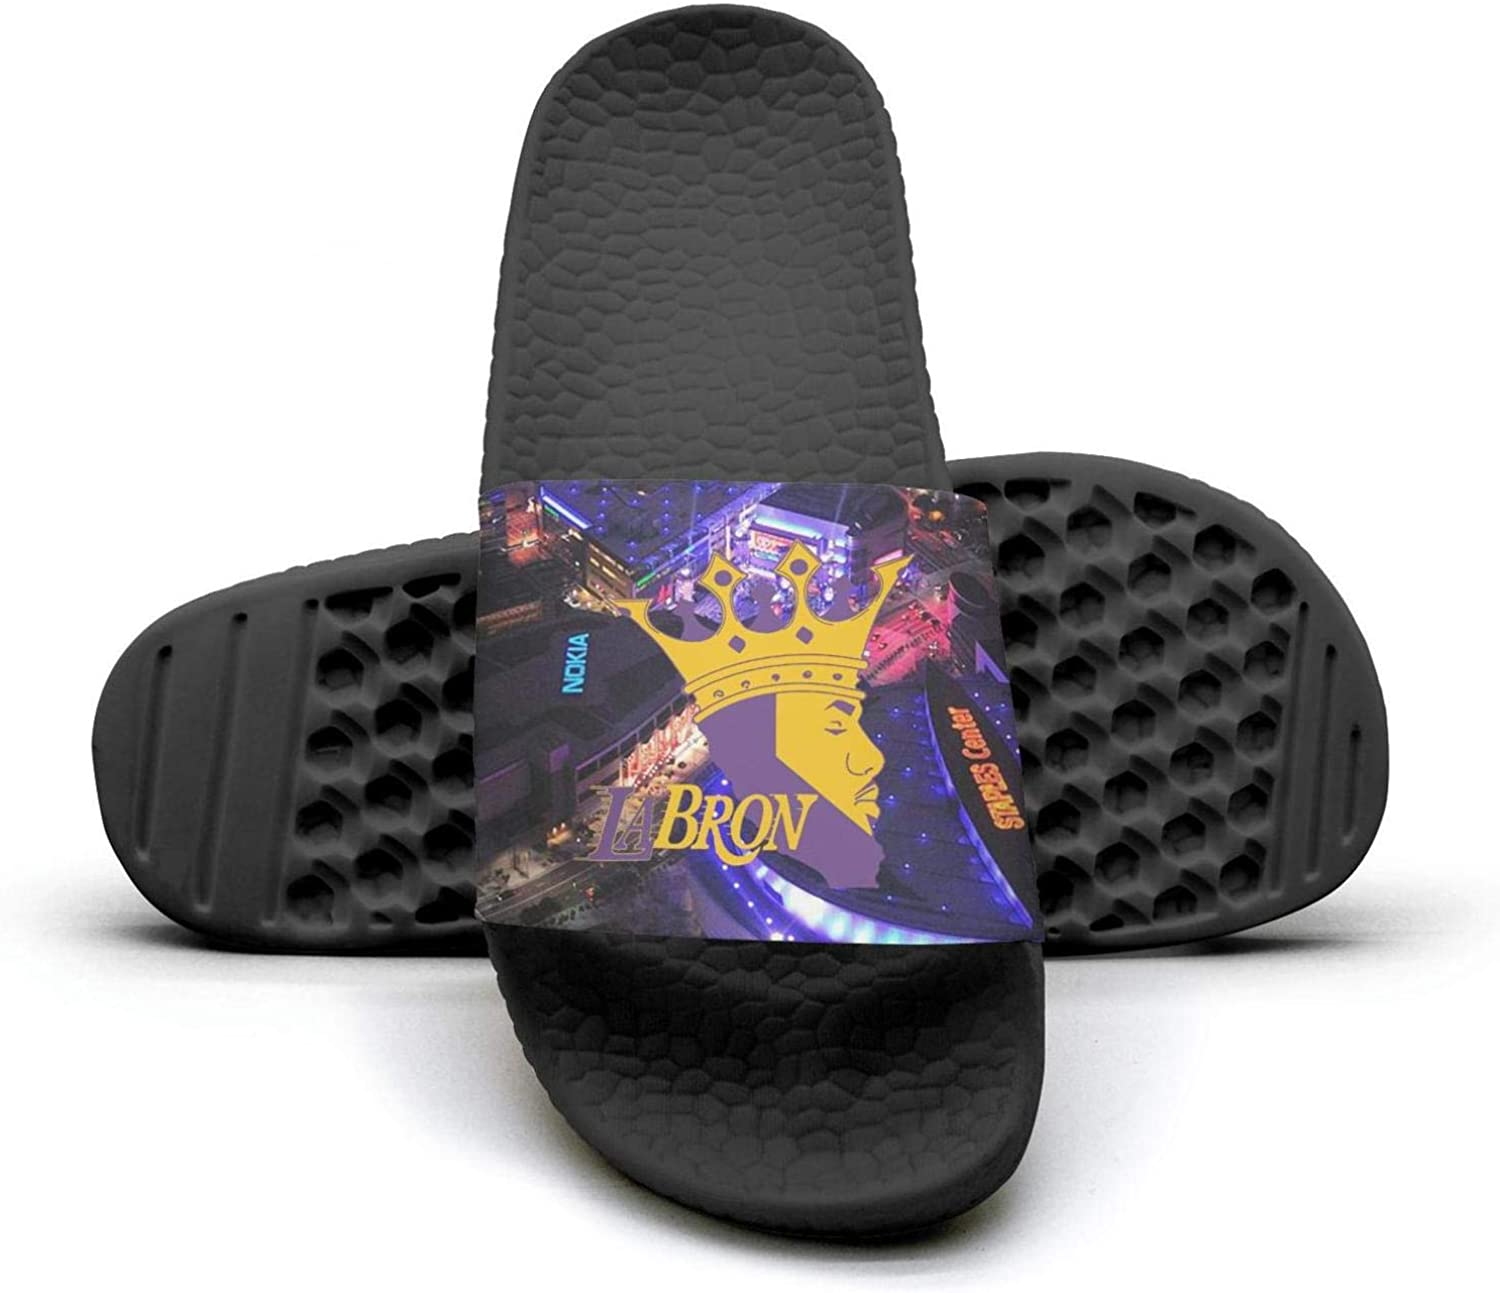 ADIDII Womens Printed Non-Slip Slipper Slides flip Flop Sandals La_Bron_Yellow_Logo_Basketball Summer Comfortable